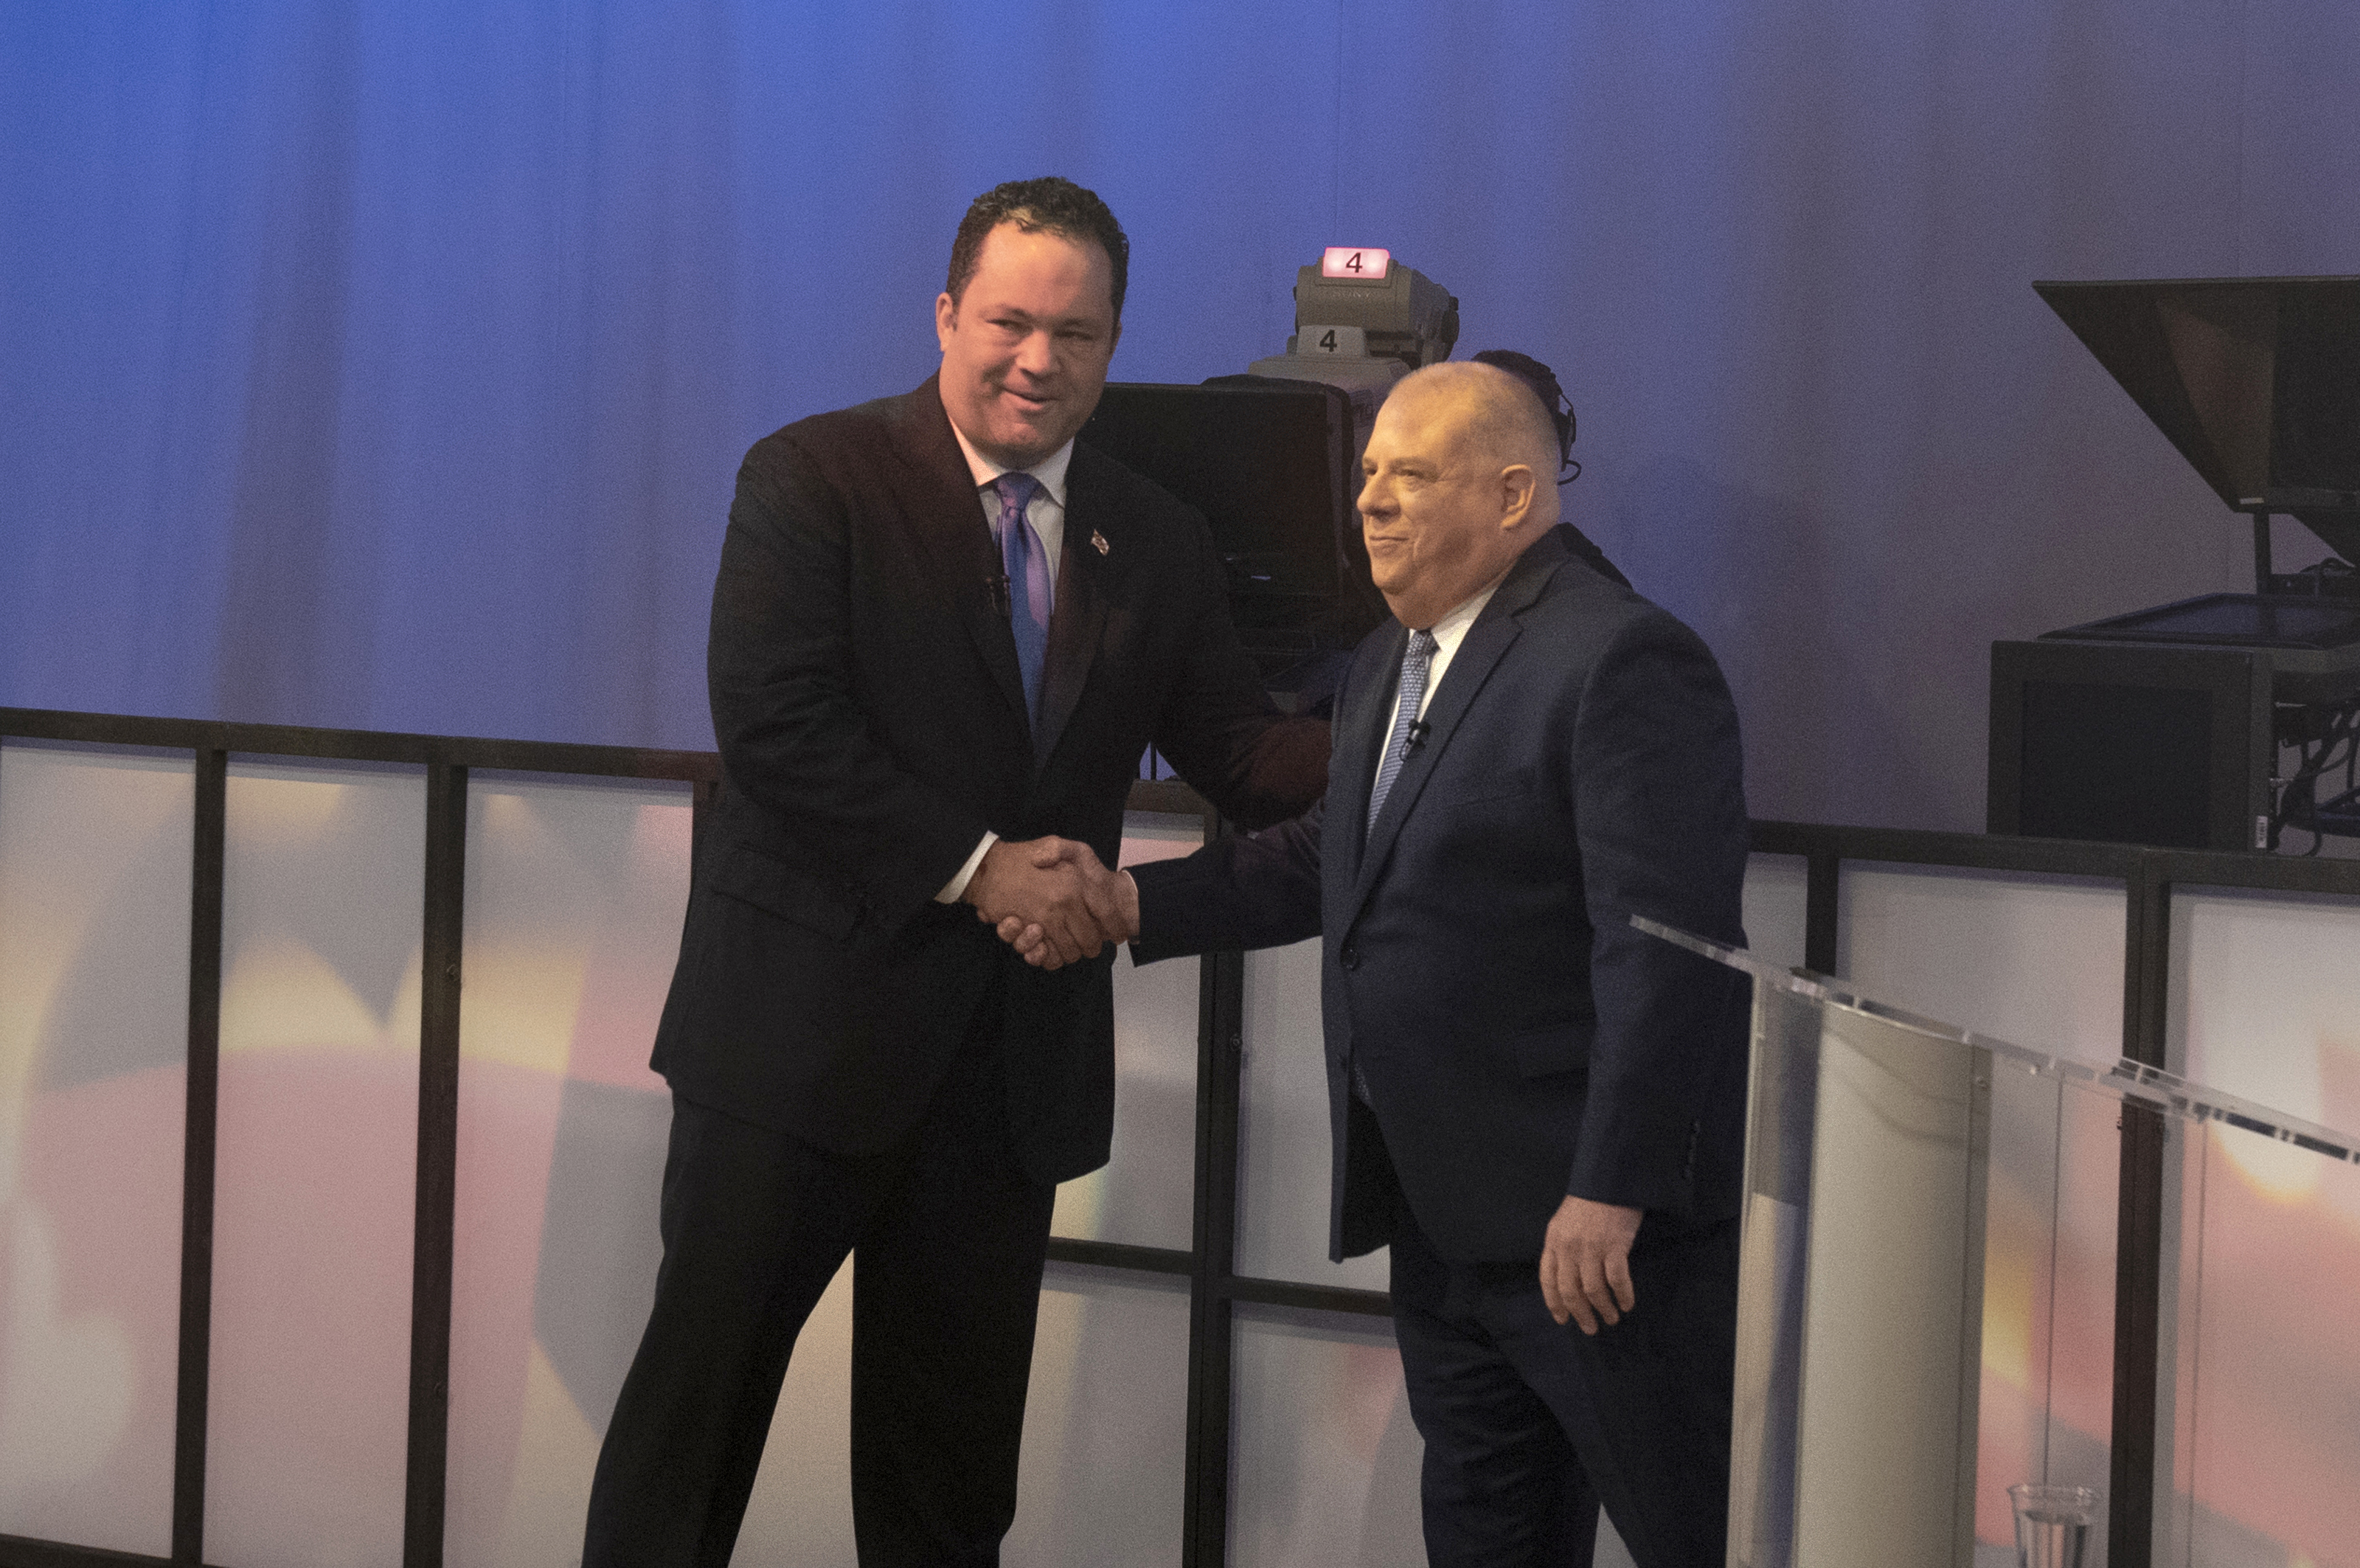 Democratic challenger Ben Jealous shakes hands with incumbent Republican Gov. Larry Hogan at the lone 2018 Maryland gubernatorial debate on Monday, Sept. 24, 2018, in Owings Mills, Maryland.